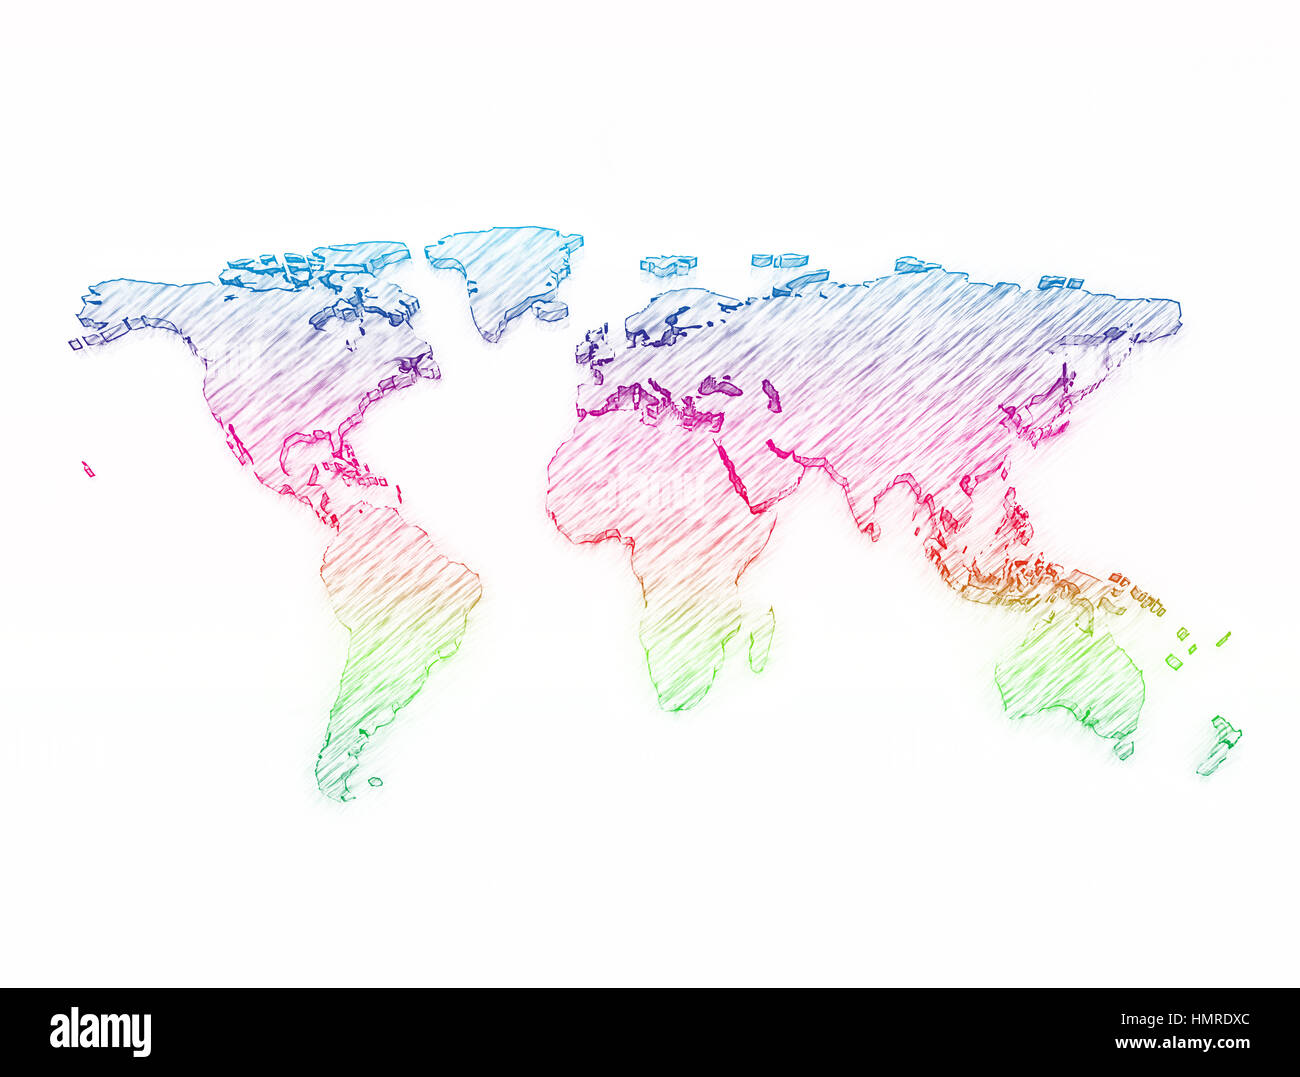 World map 3d pencil sketch multi color stock photo 133281524 alamy world map 3d pencil sketch multi color gumiabroncs Choice Image